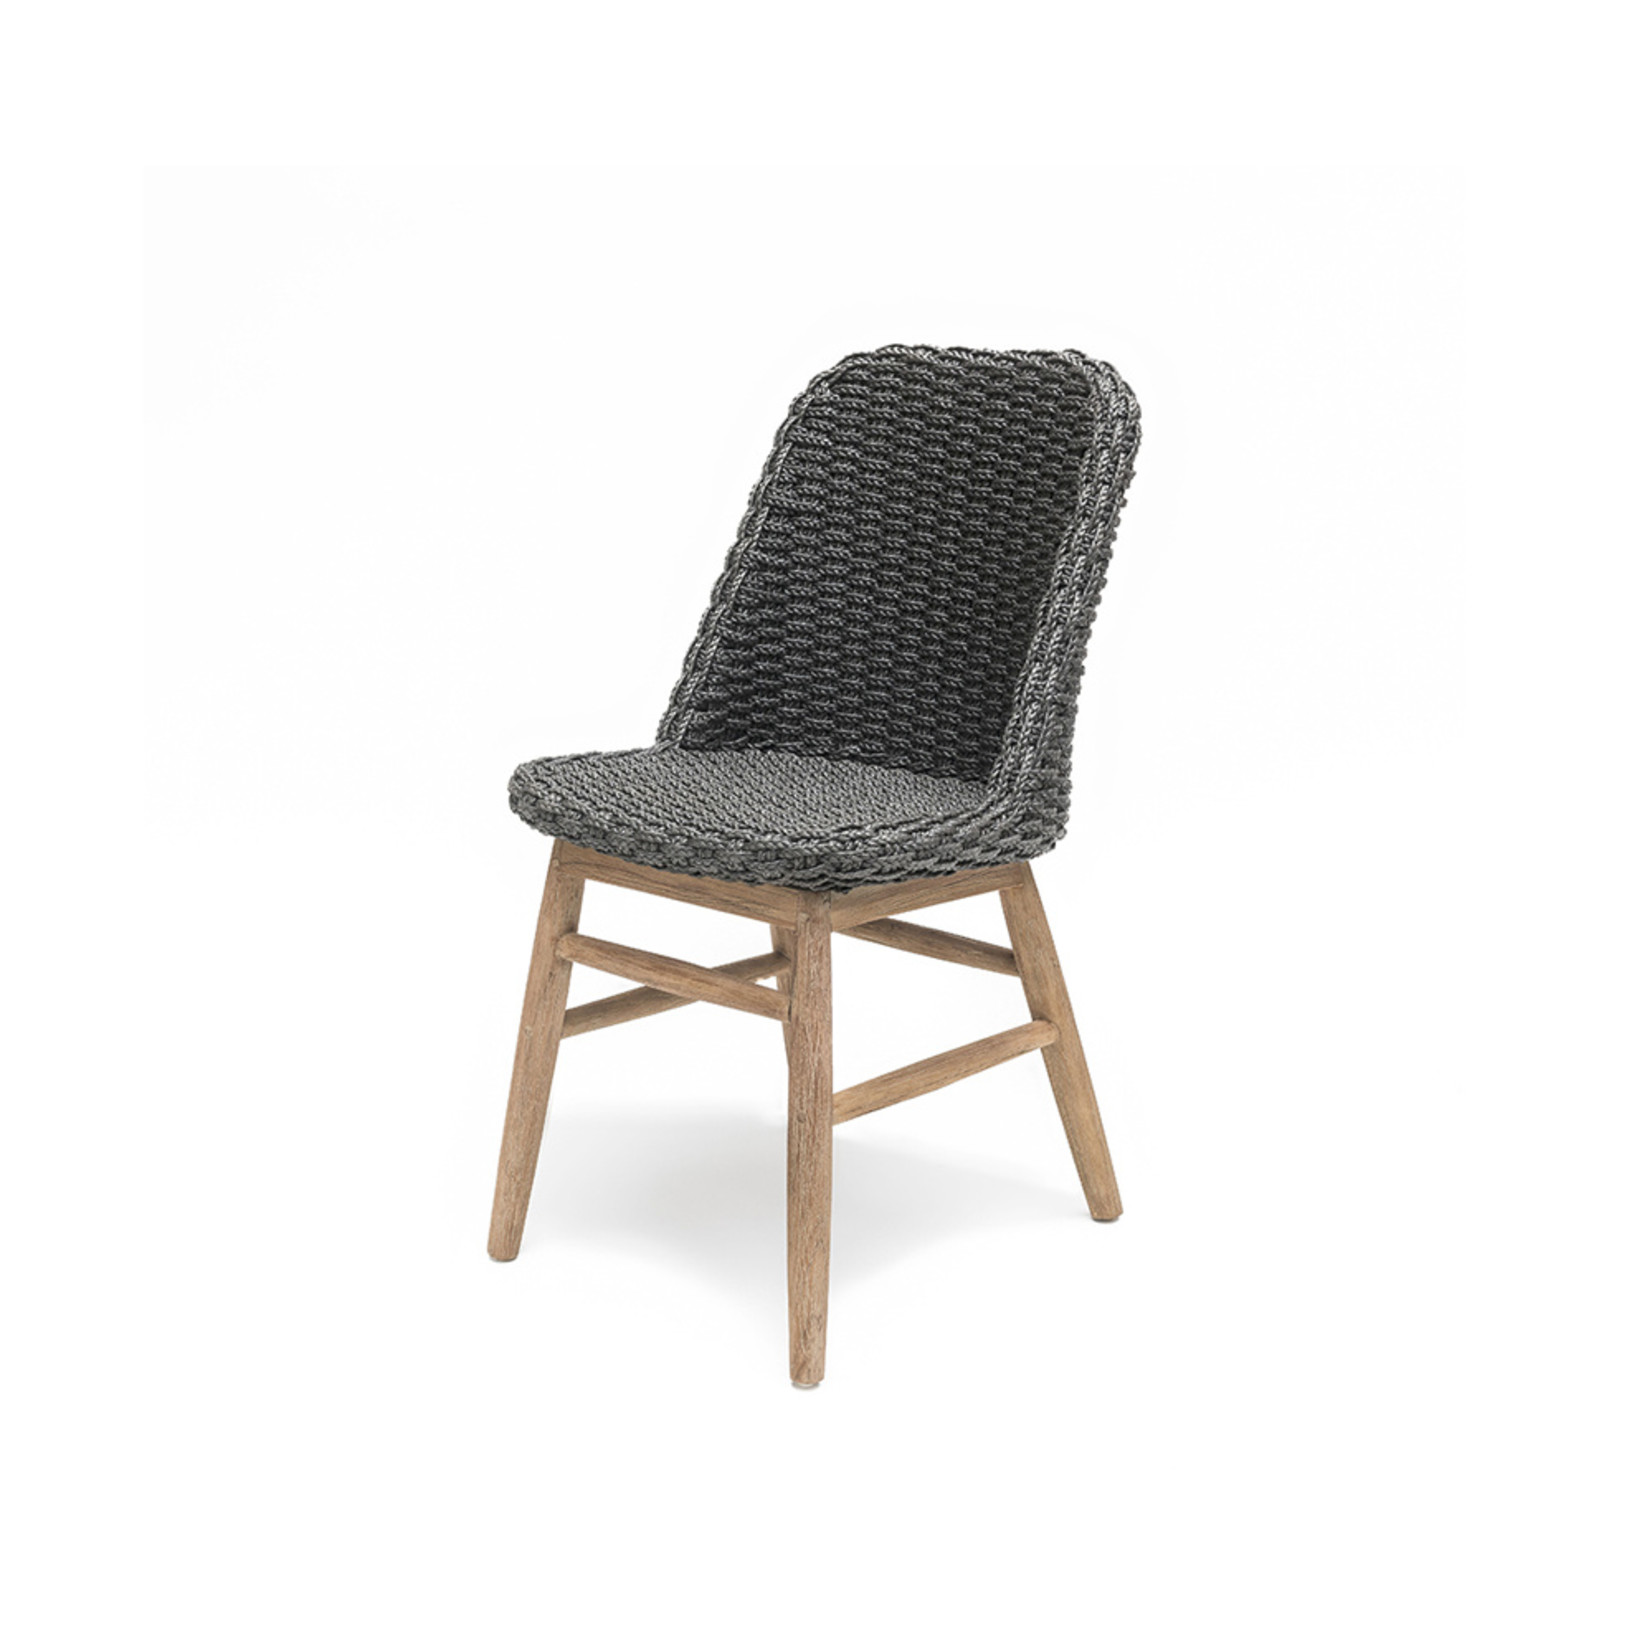 Gommaire Chair Sienna | Reclaimed Teak Natural Grey / PE Wicker Charcoal